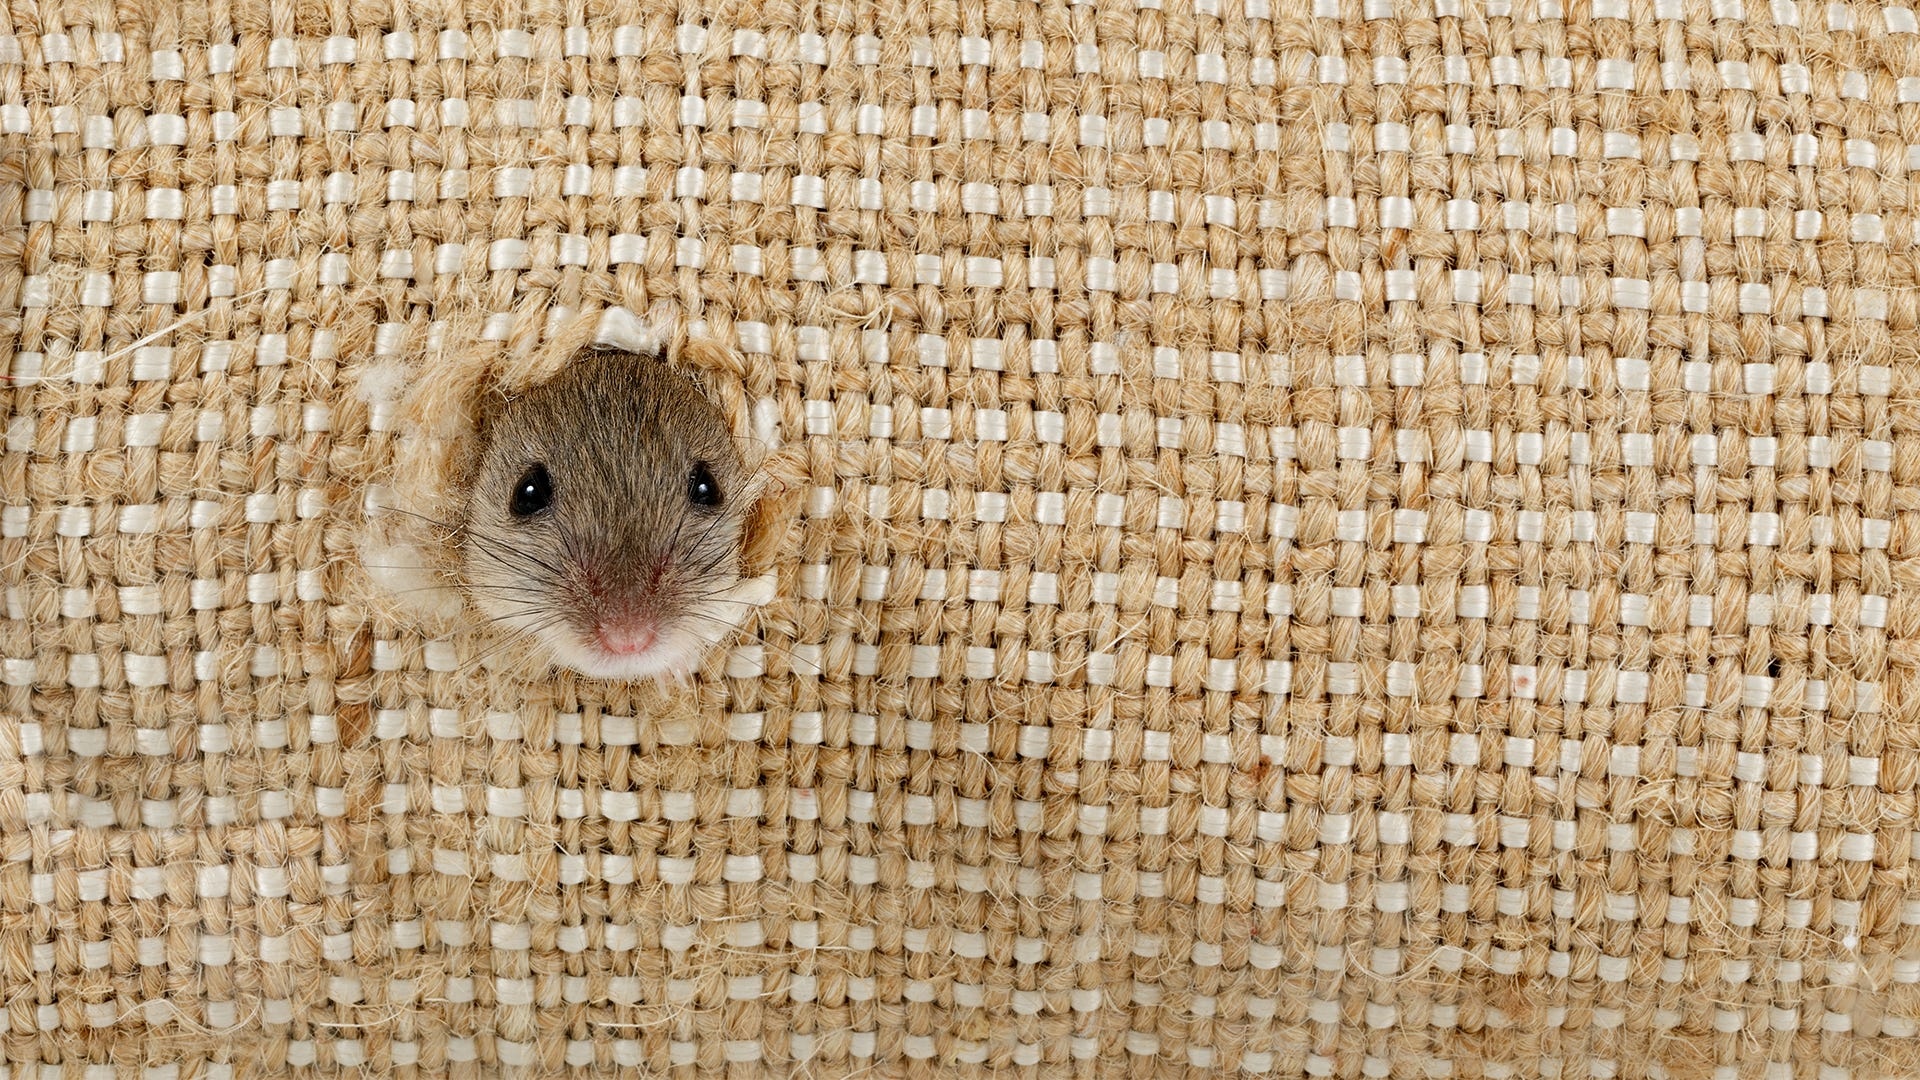 How Do Mice Fit in Such Small Spaces?